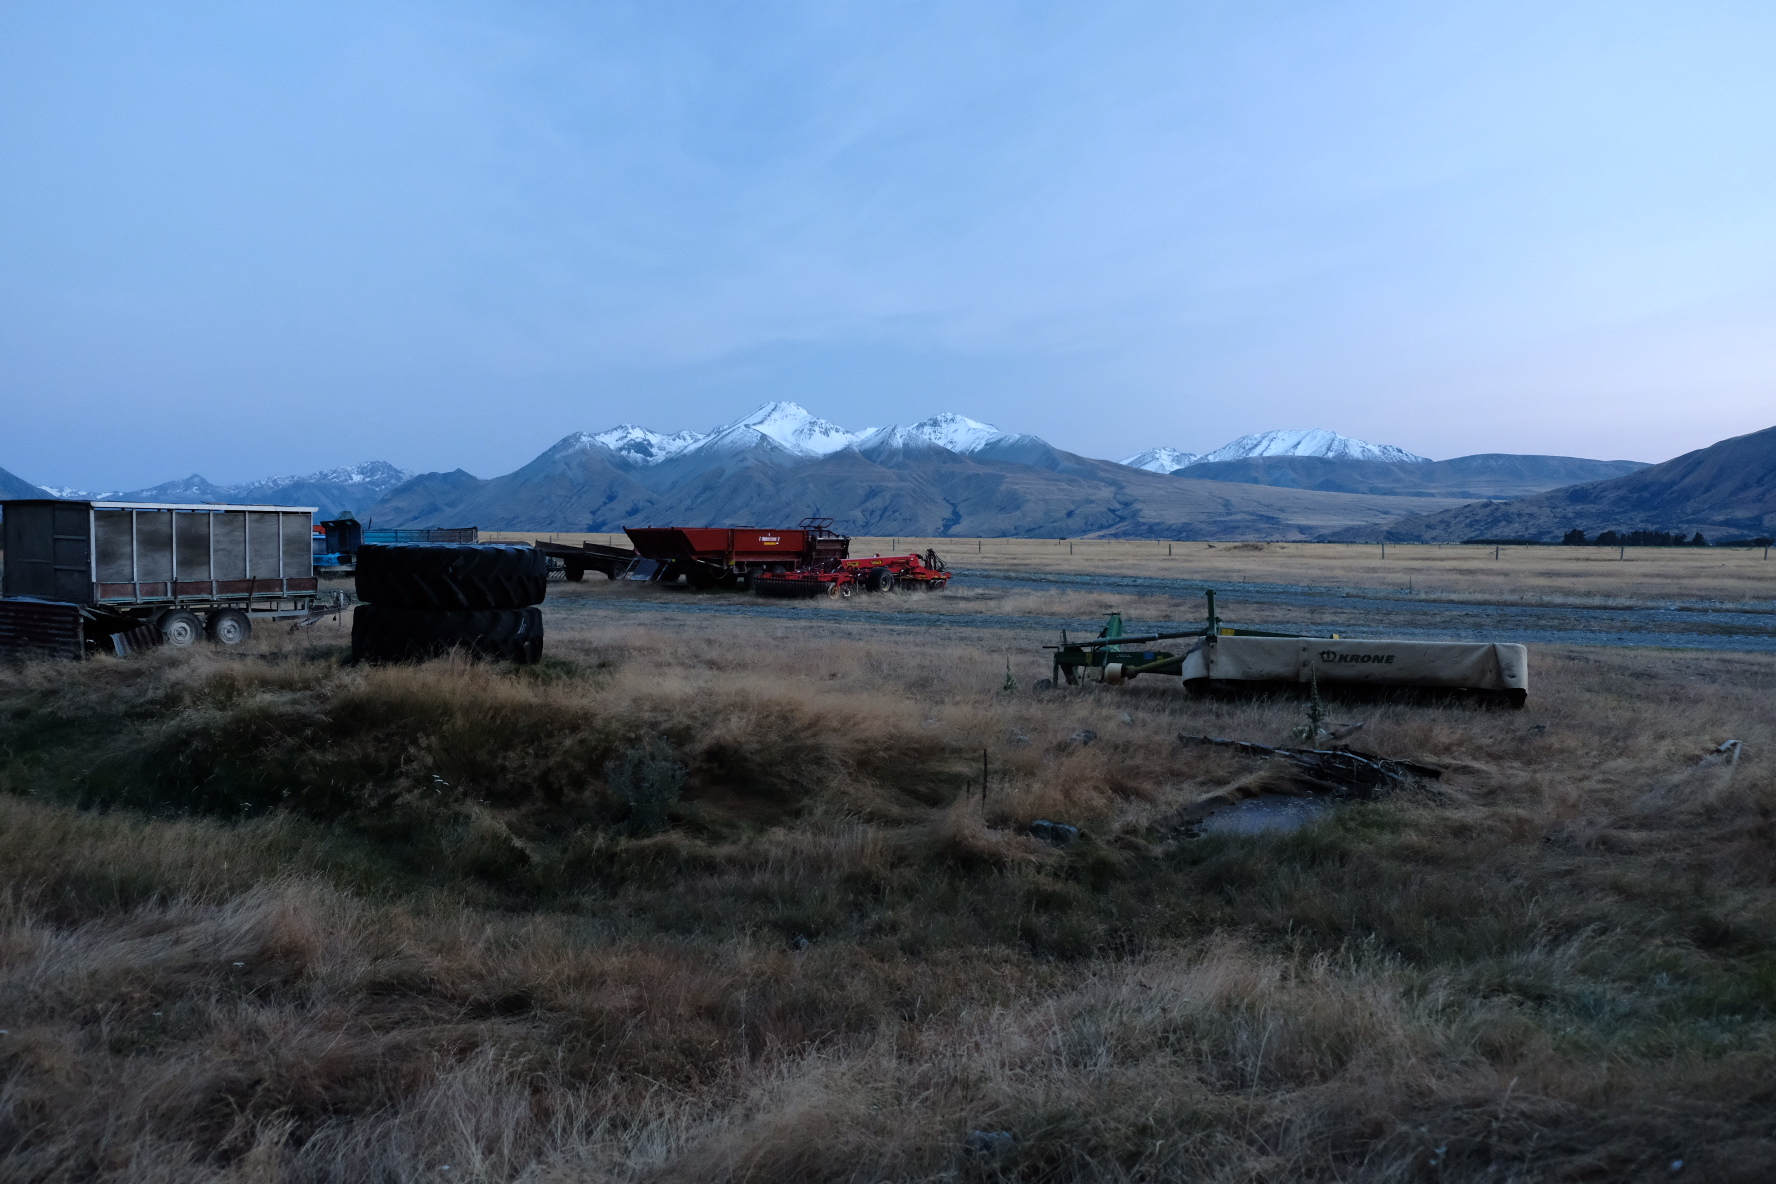 Mt. Potts and the Rangitata from the other side